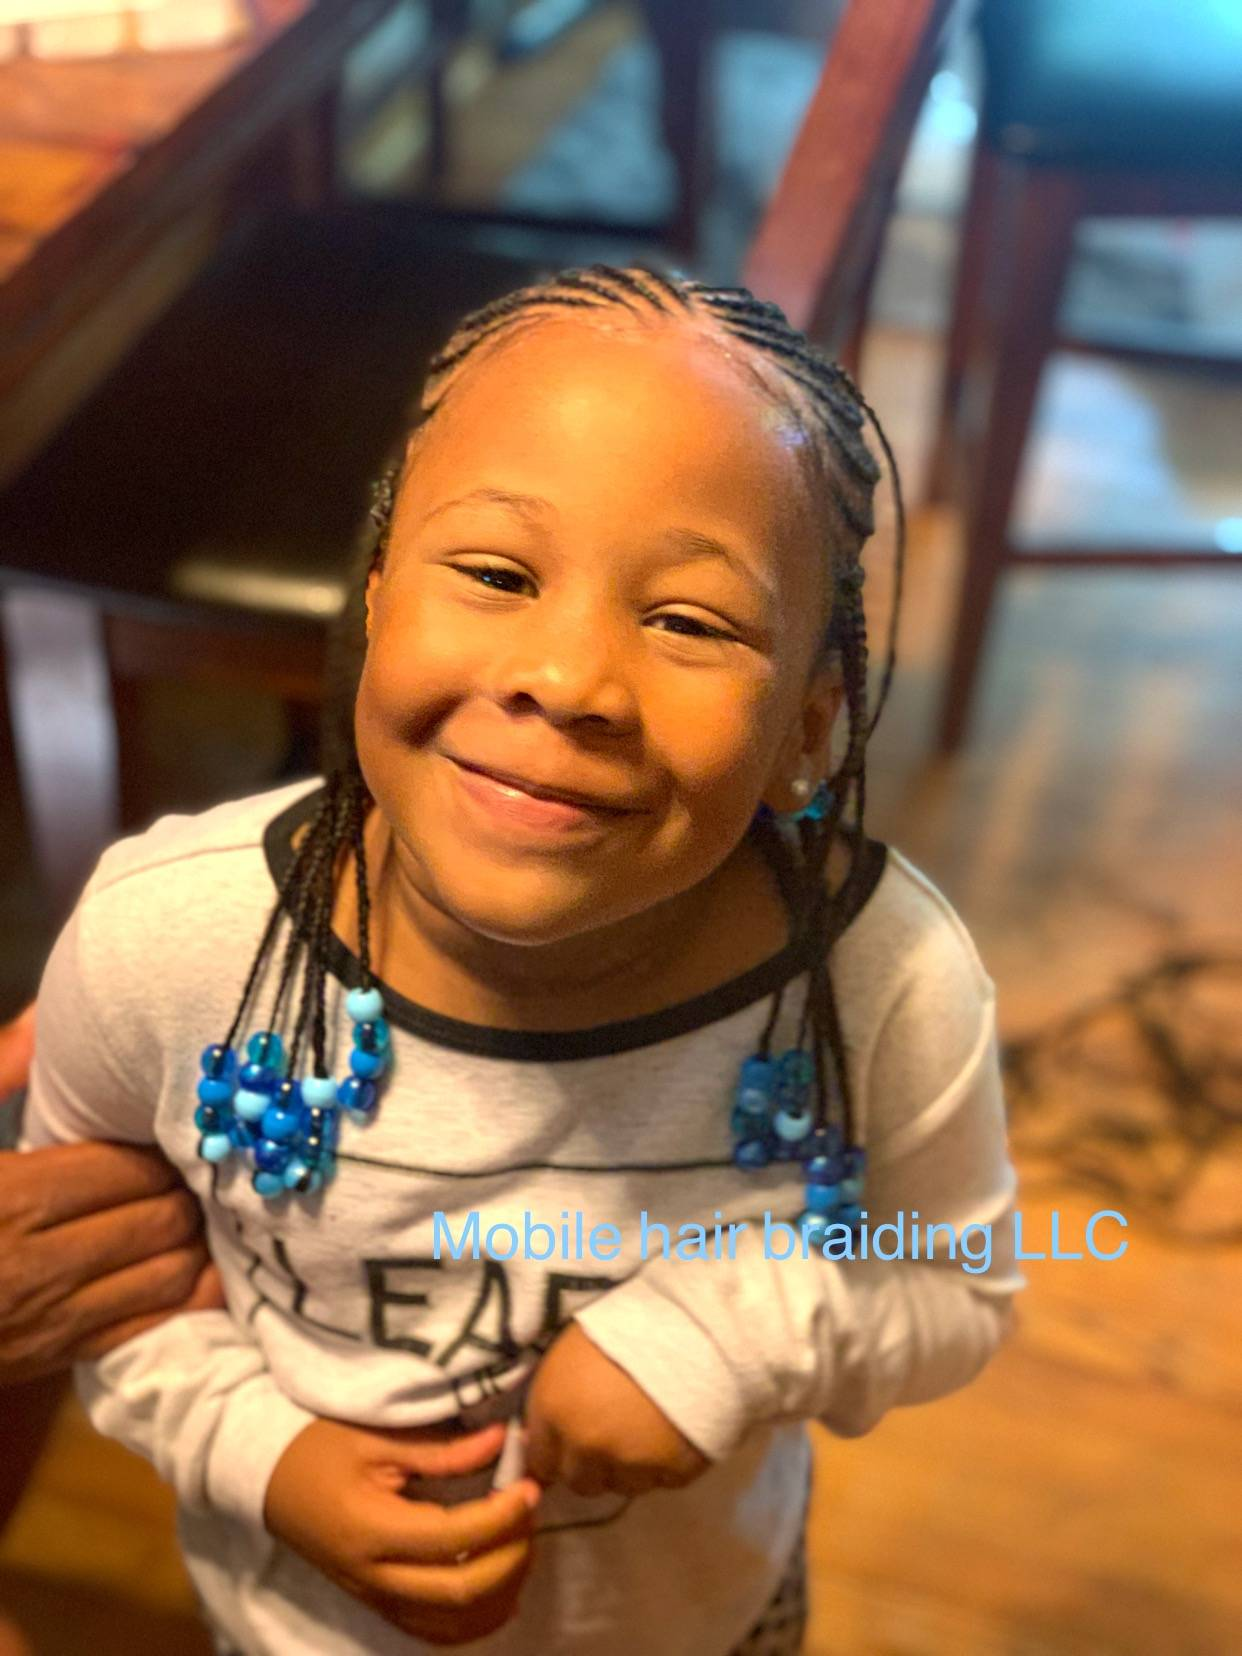 Kids Cornrows with beads completed in district heights, MD